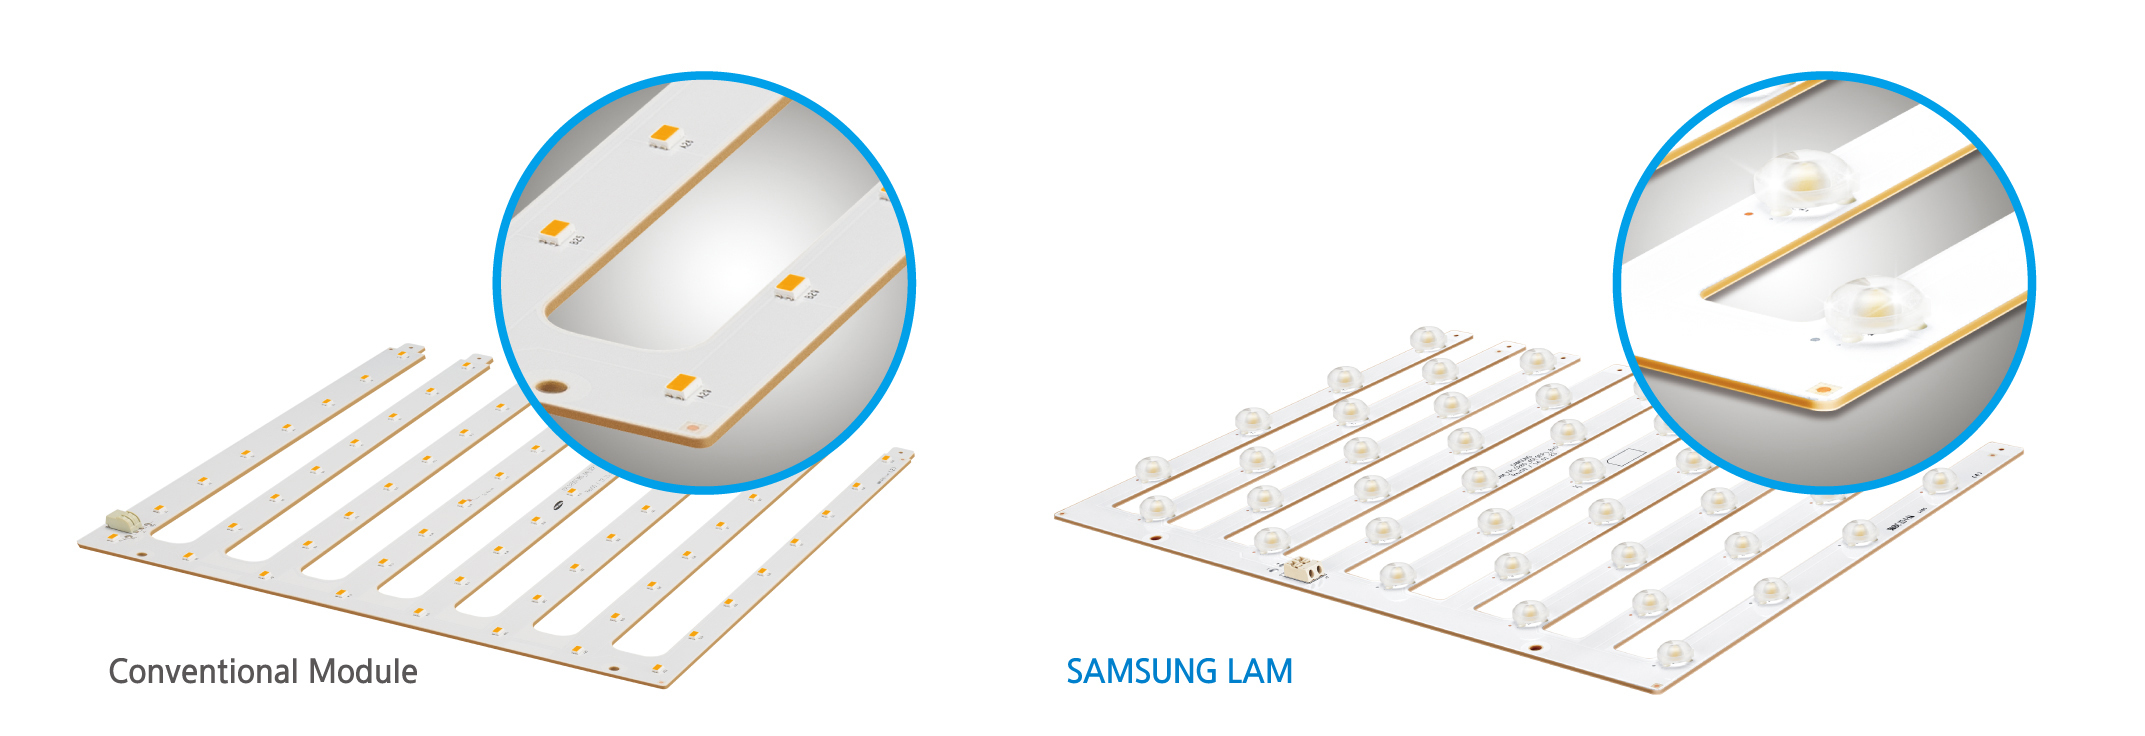 Samsung LED Lens-attached Module with Optic Technology (Graphic: Business Wire)